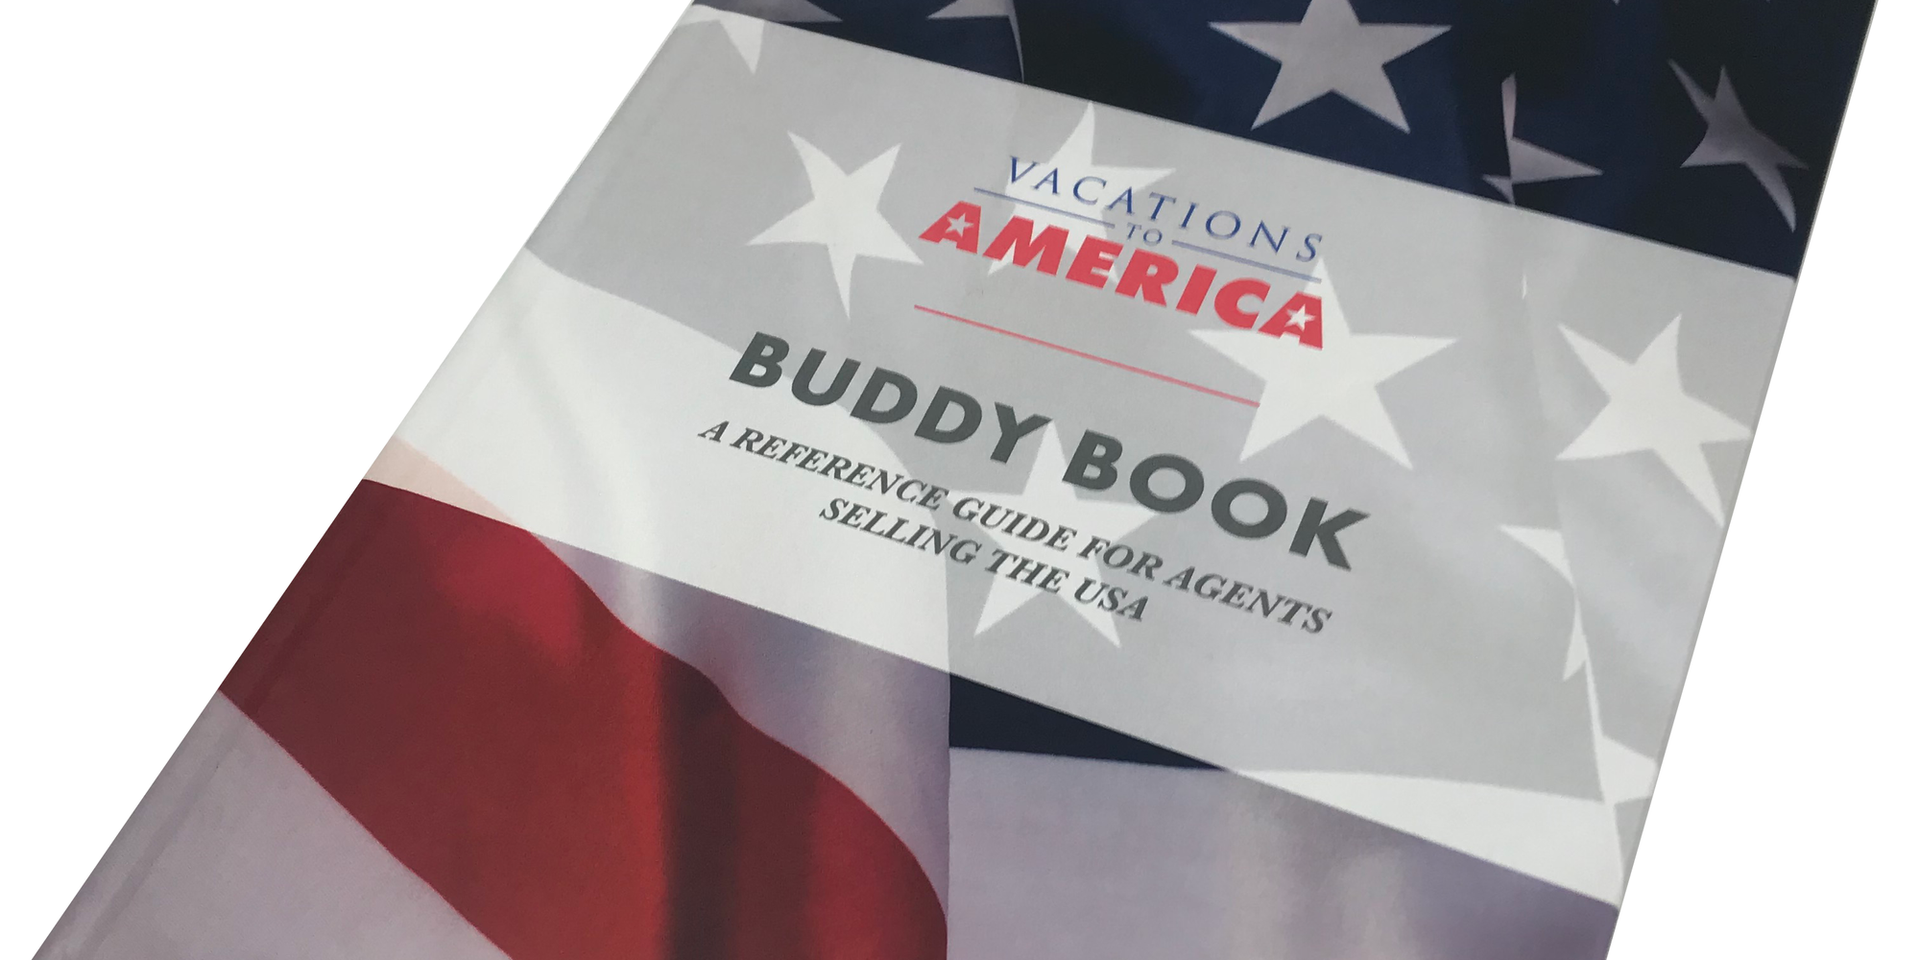 Vacations to America - Buddy Book